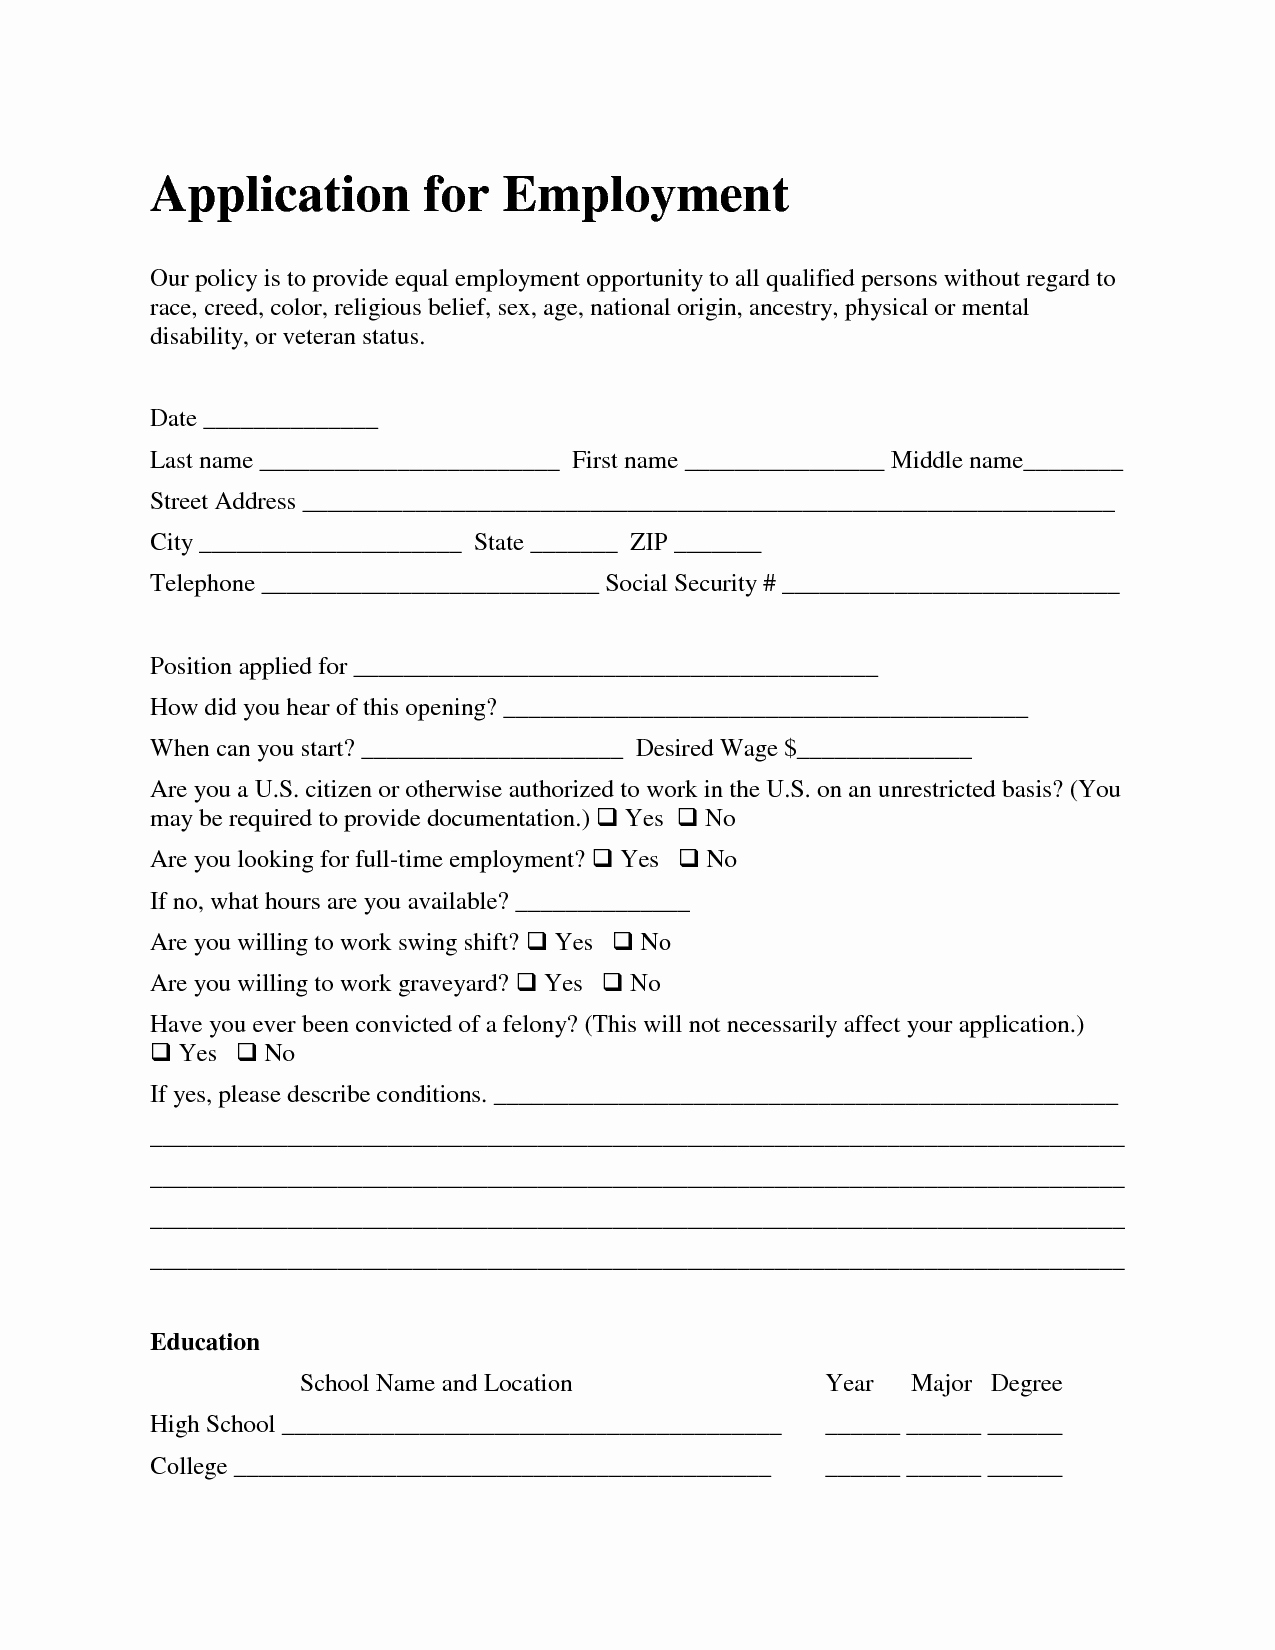 Application for Employment Free Template Beautiful Template Job Application Azhrzltq